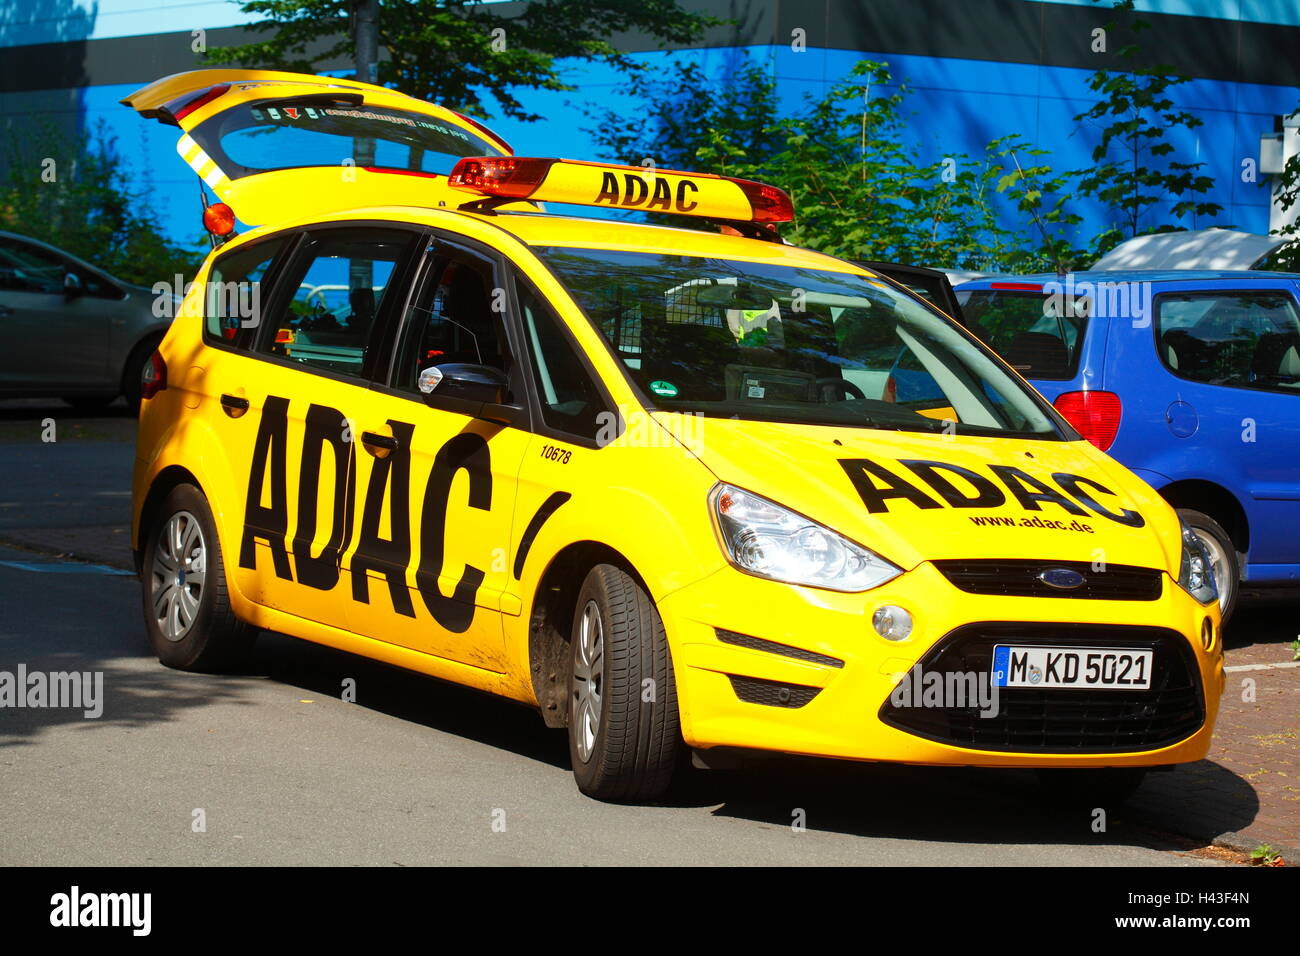 adac breakdown service stockfotos adac breakdown service bilder alamy. Black Bedroom Furniture Sets. Home Design Ideas